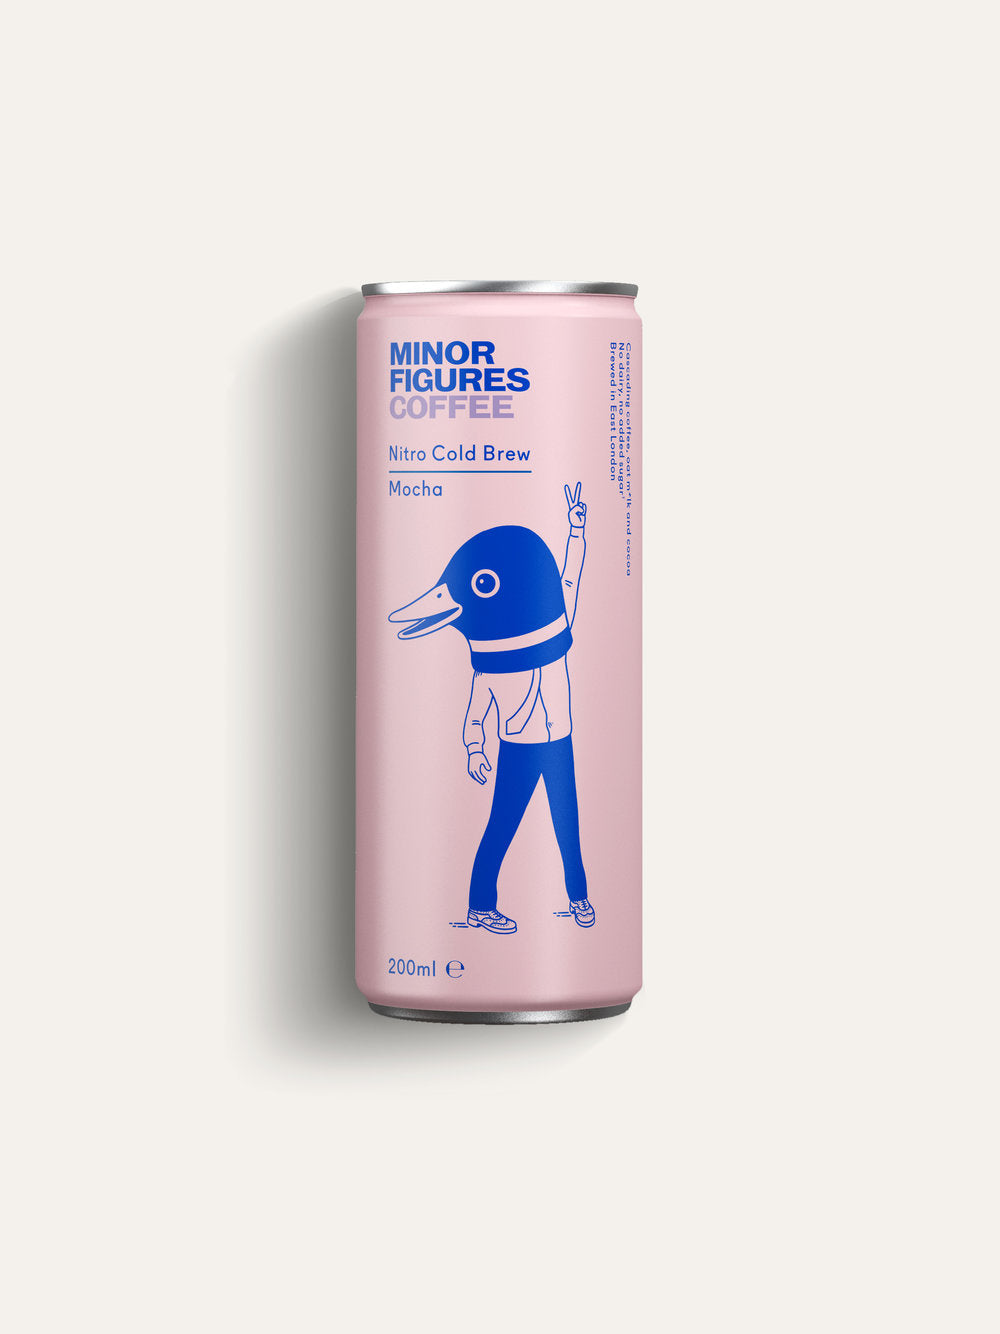 Minor Figures Nitro Cold Brew Mocha - 200ml - Shipping From Just £2.99 Or FREE When You Spend £55 Or More